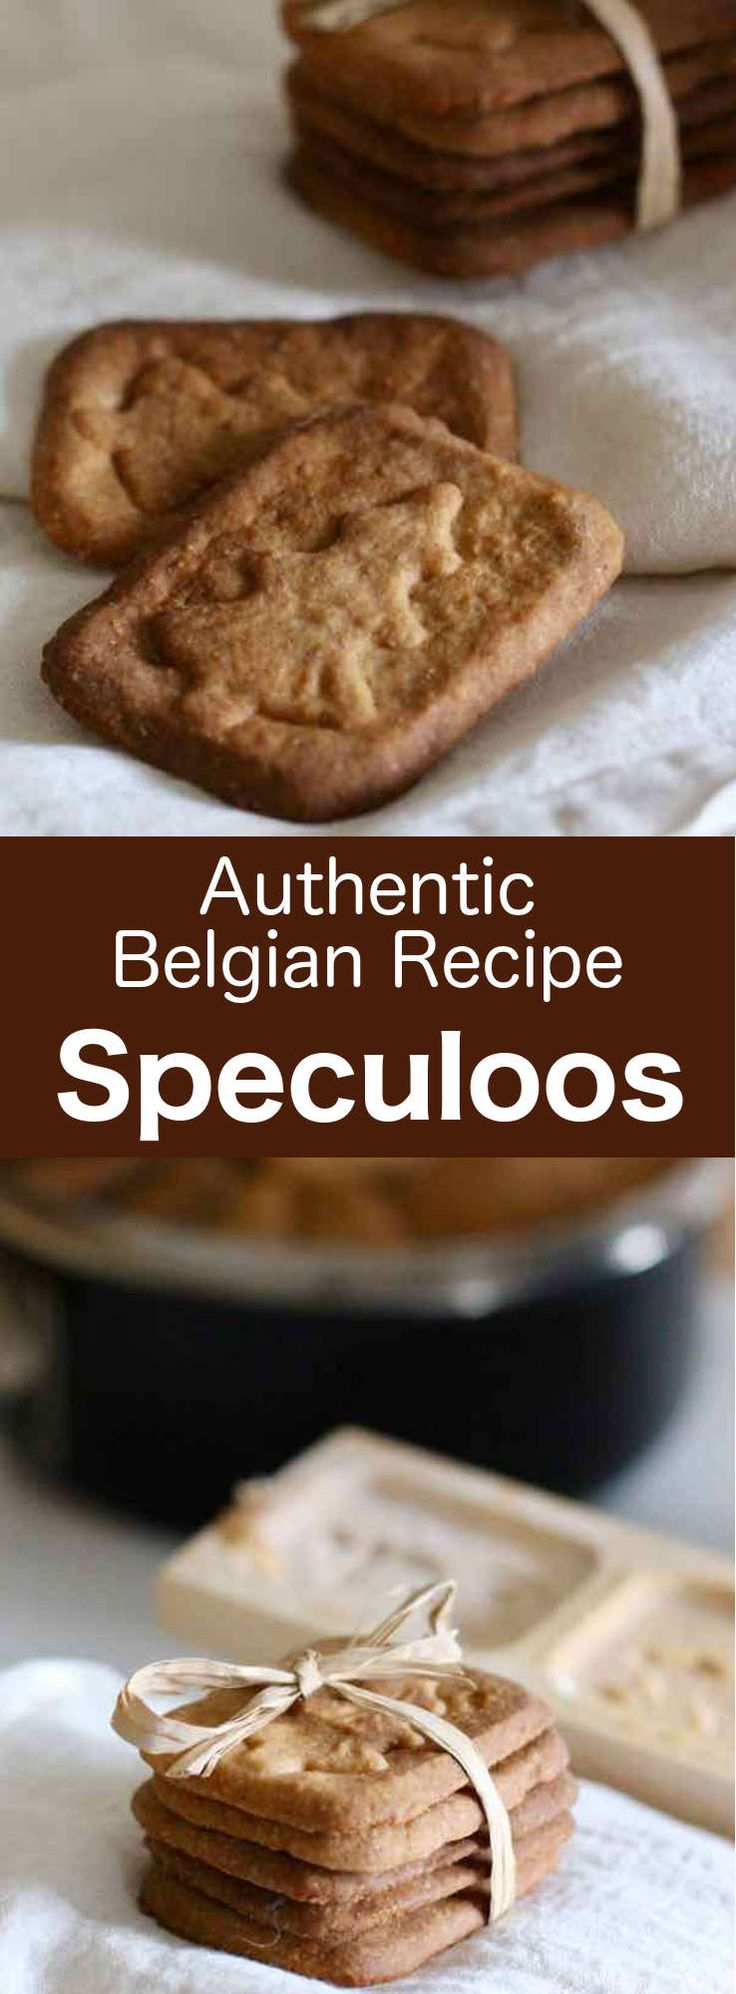 Speculoos are delicious and traditional St. Nicholas cookies from Belgium, with a distinct spiced flavor which can now be enjoyed all year. #Belgian #Belgium #BelgianRecipe #BelgianCuisine #Dutch #Holland #Netherlands #DutchCuisine #DutchRecipe #Christmas #ChristmasRecipe #StNicholas #SaintNicholas #SaintNicolas #WorldCuisine #196flavors